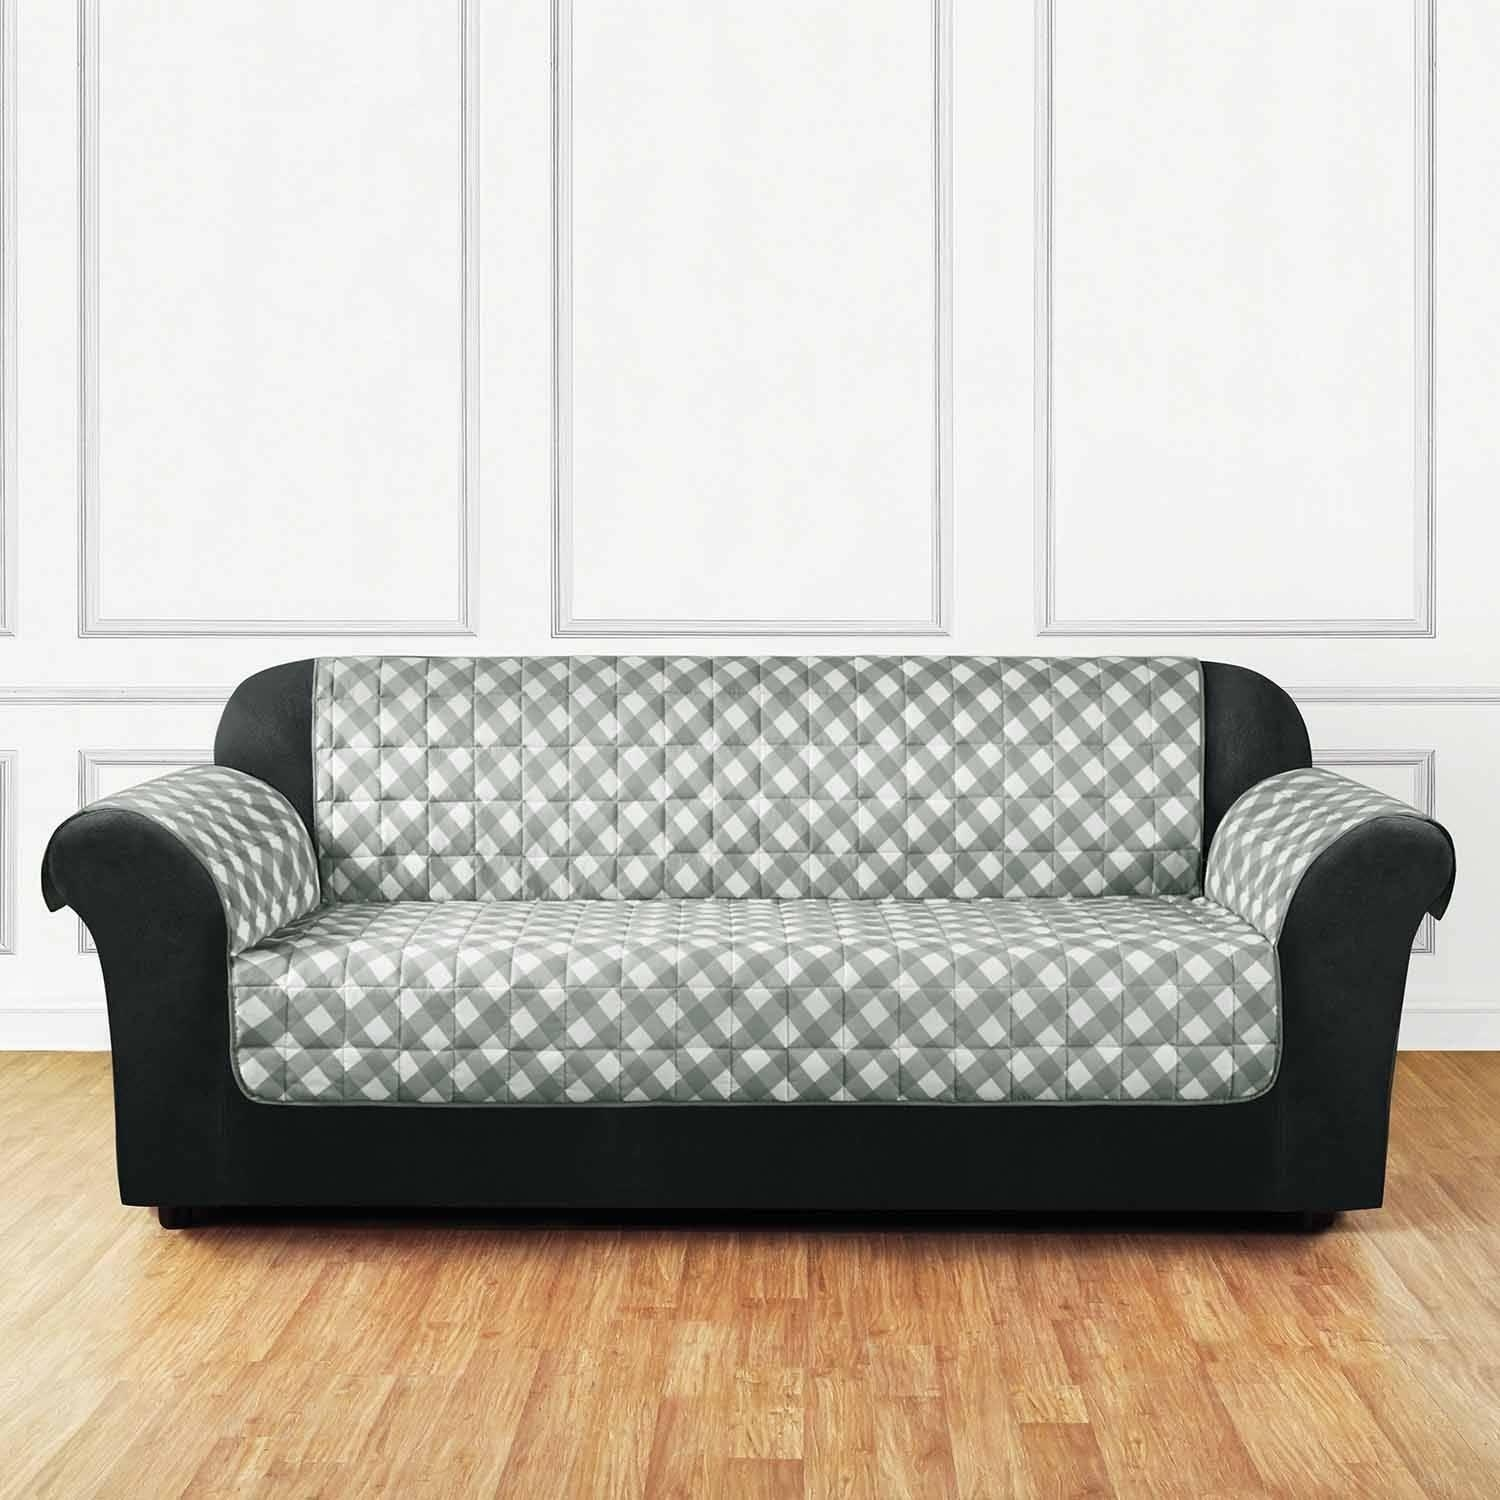 throw covers sofa sleeper sectional sofas with recliner 20 inspirations patterned slipcovers ideas